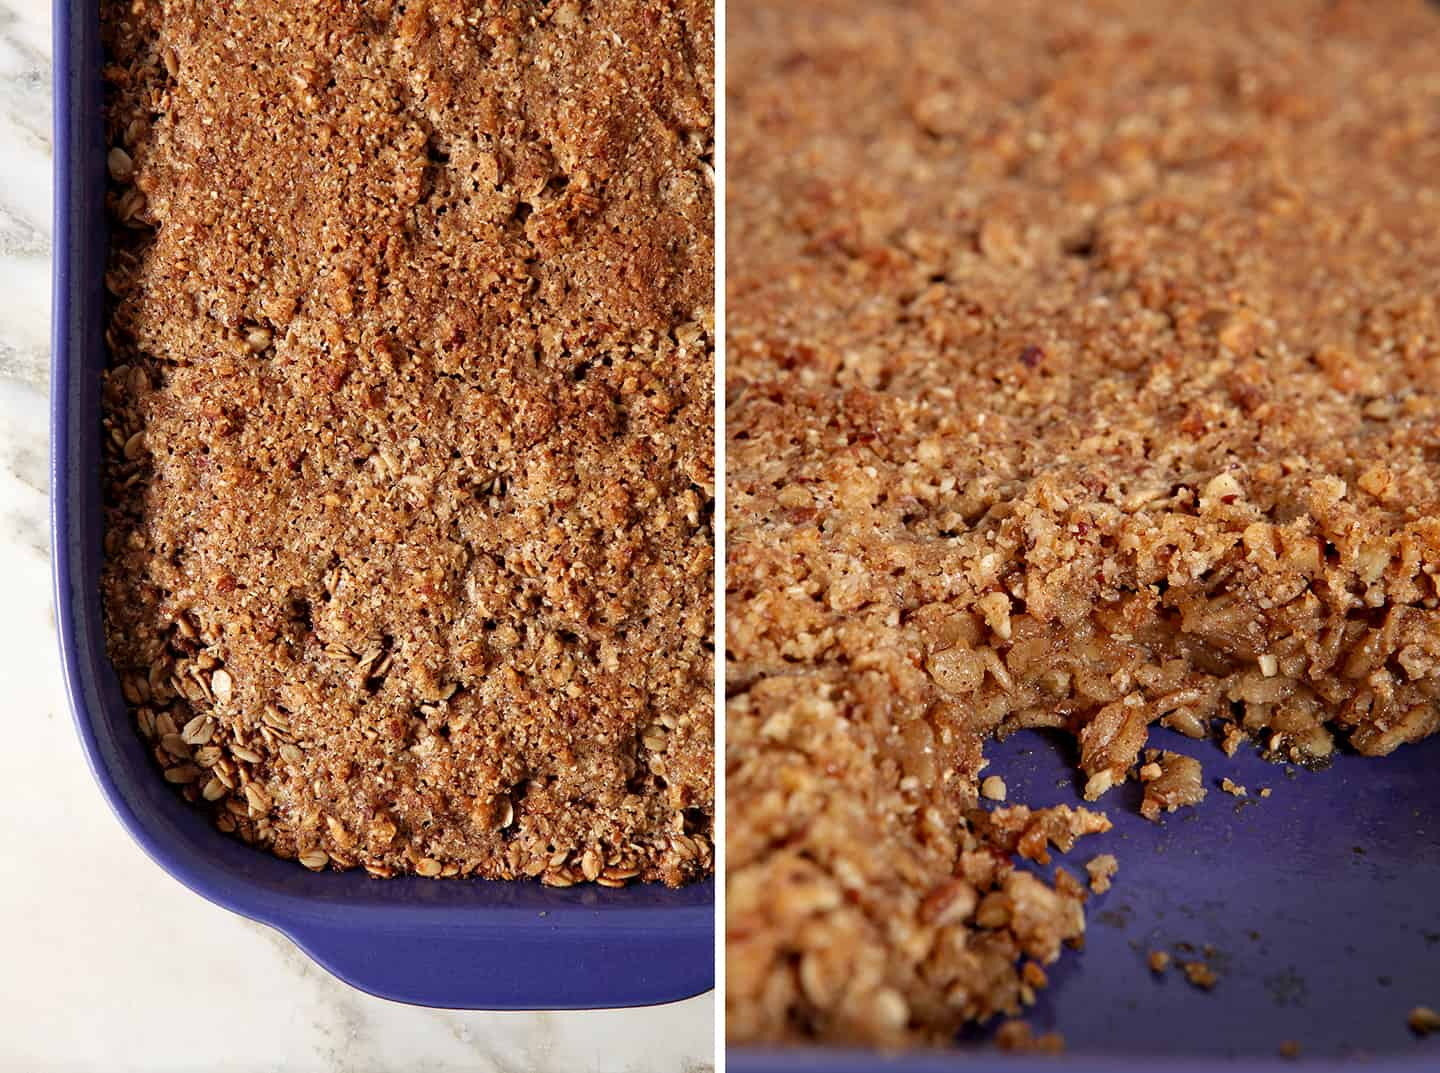 Collage of two images of the Hazelnut and Pecan Baked Oatmeal in a casserole dish, side-by-side